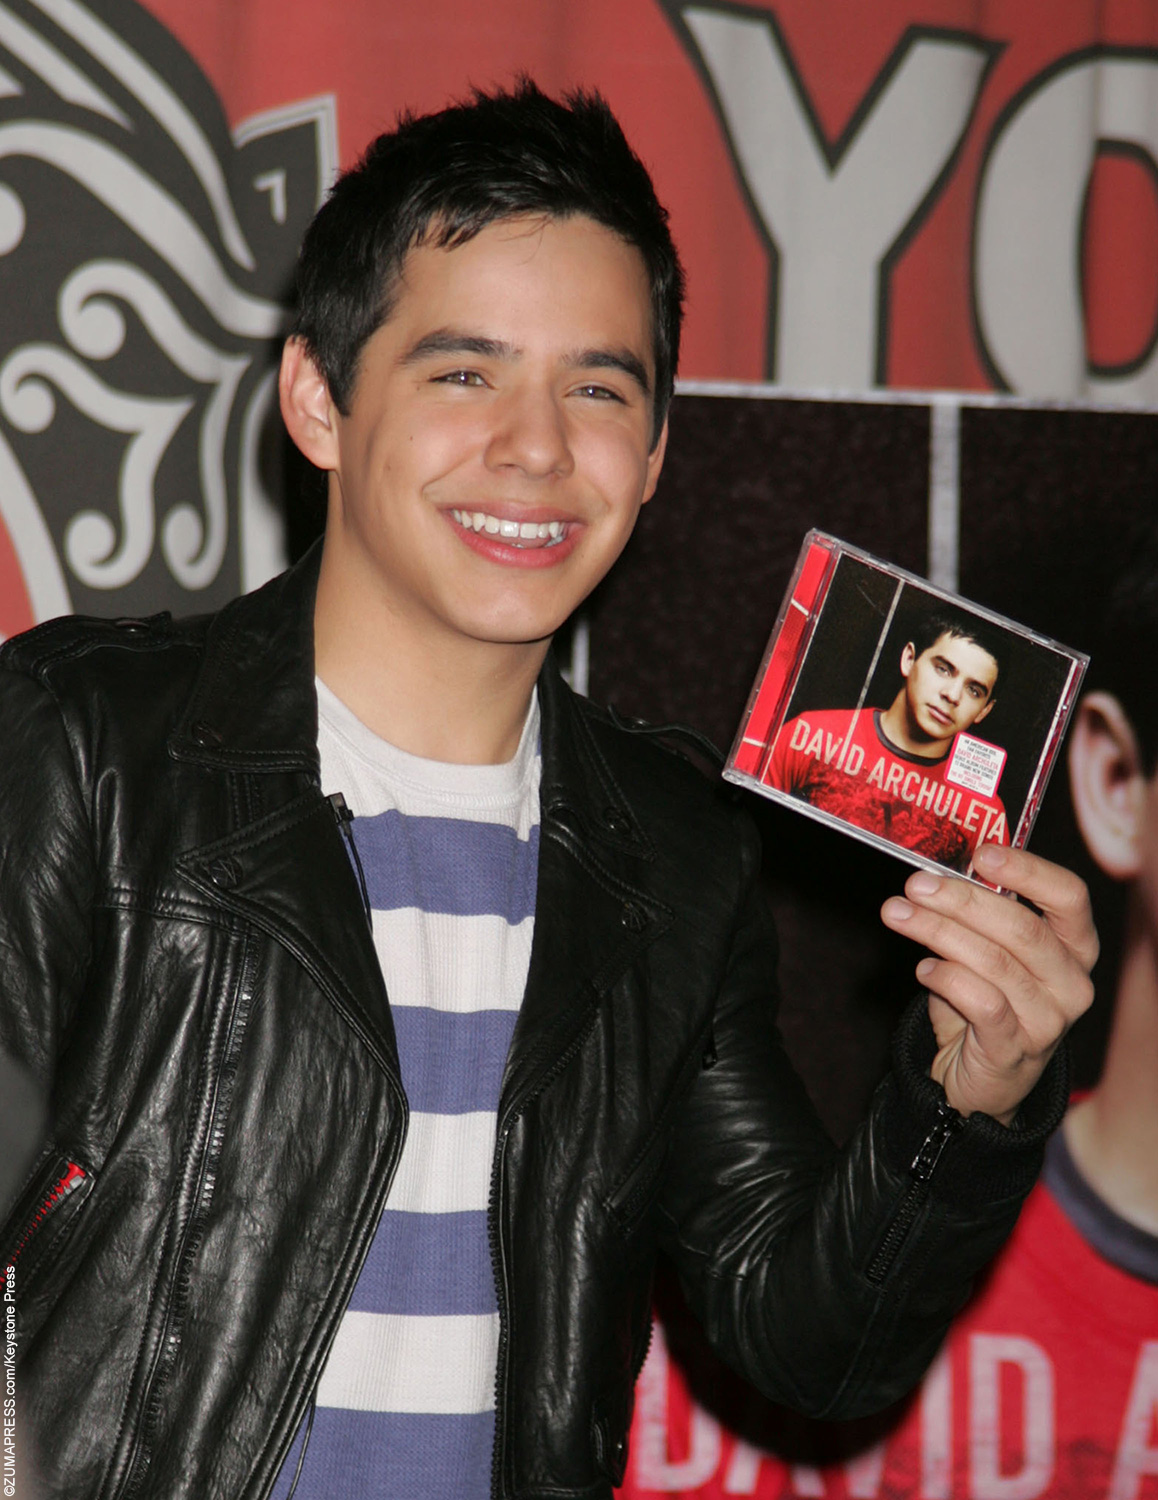 David Archuleta was the runner-up to David Cook in season seven.At 16, Archuleta was one of the youngest contestants onAmerican Idoland he received 44 per cent of the 97 million votes for the show's finale that year. The singer is now 23 and has produced three albums. David is a member of The Church of […]